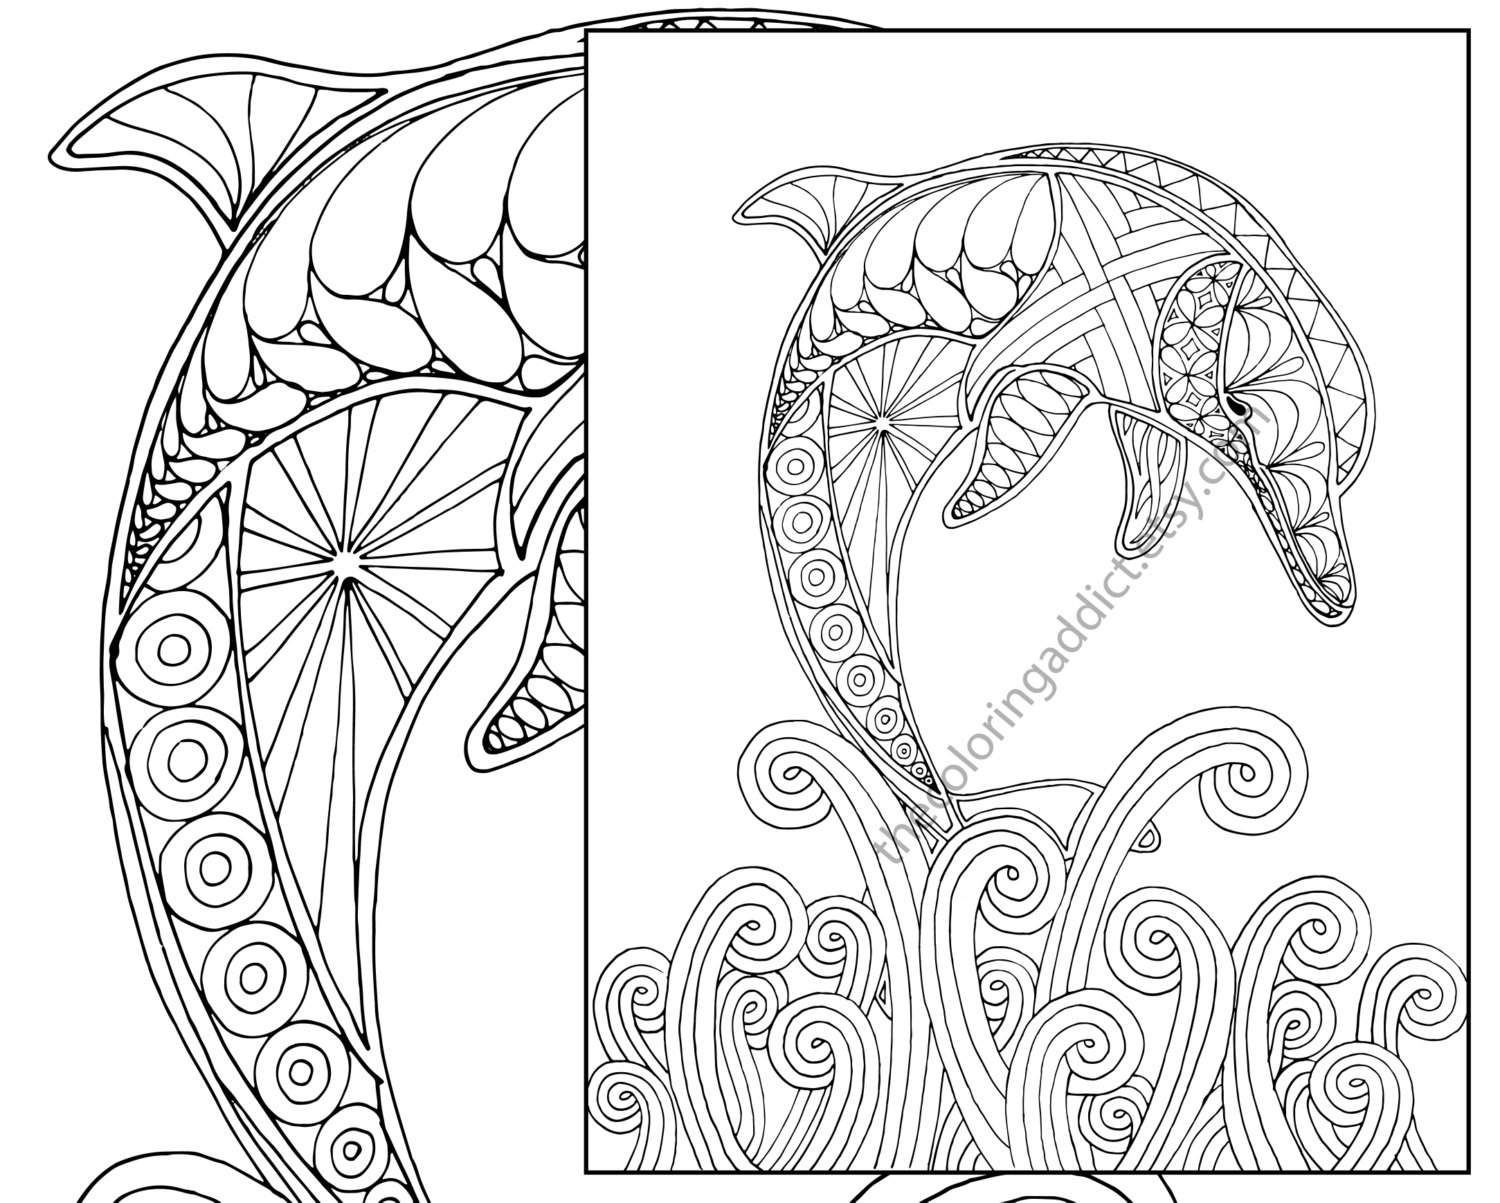 Henna Animal Coloring Pages at GetDrawings.com